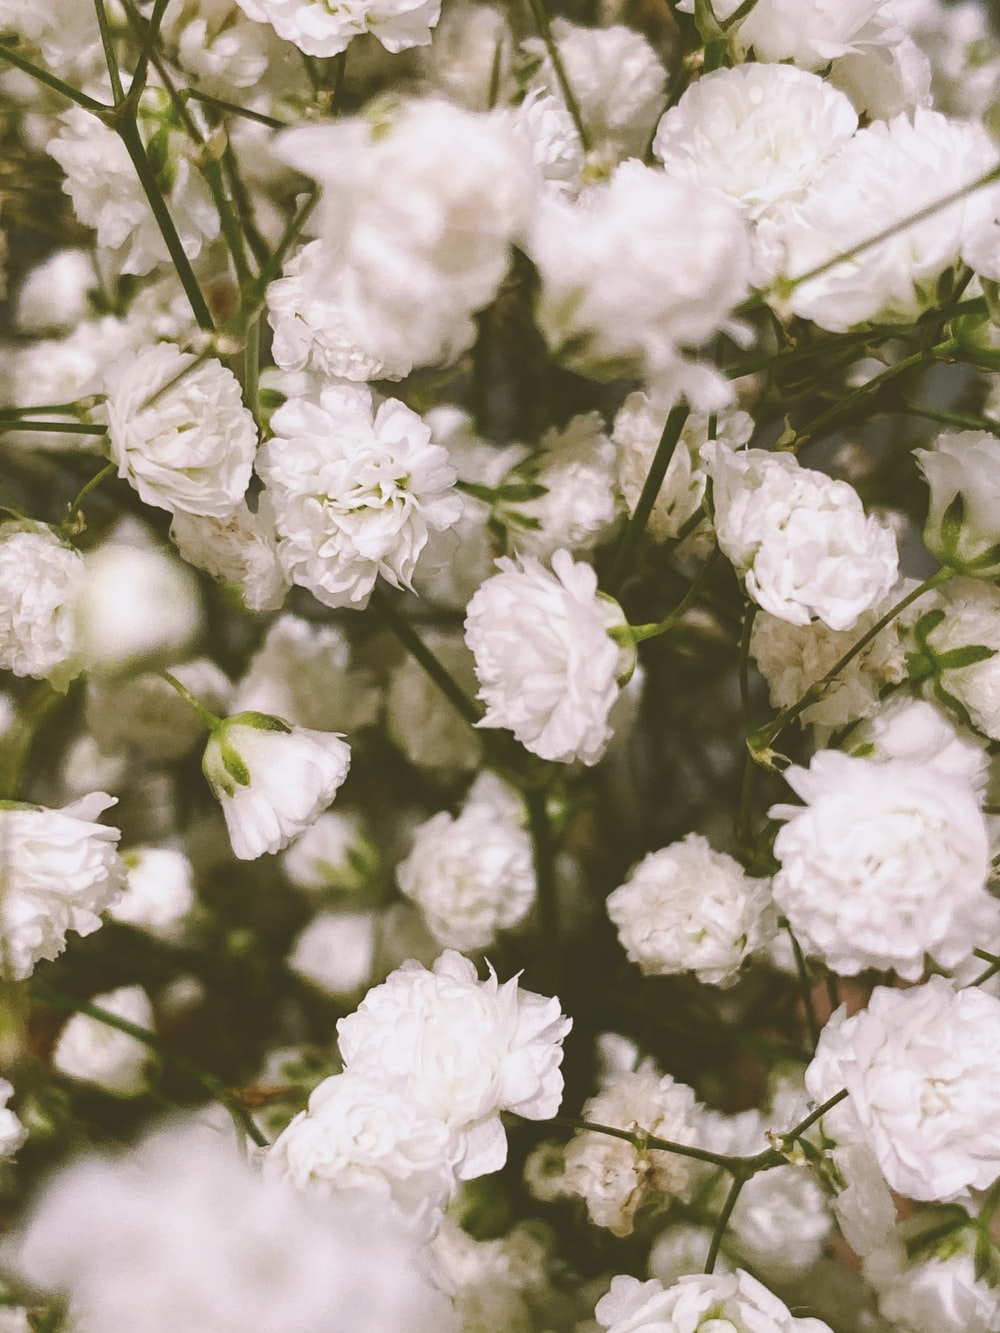 500+ White Flowers Pictures | Download Free Images on Unsplash